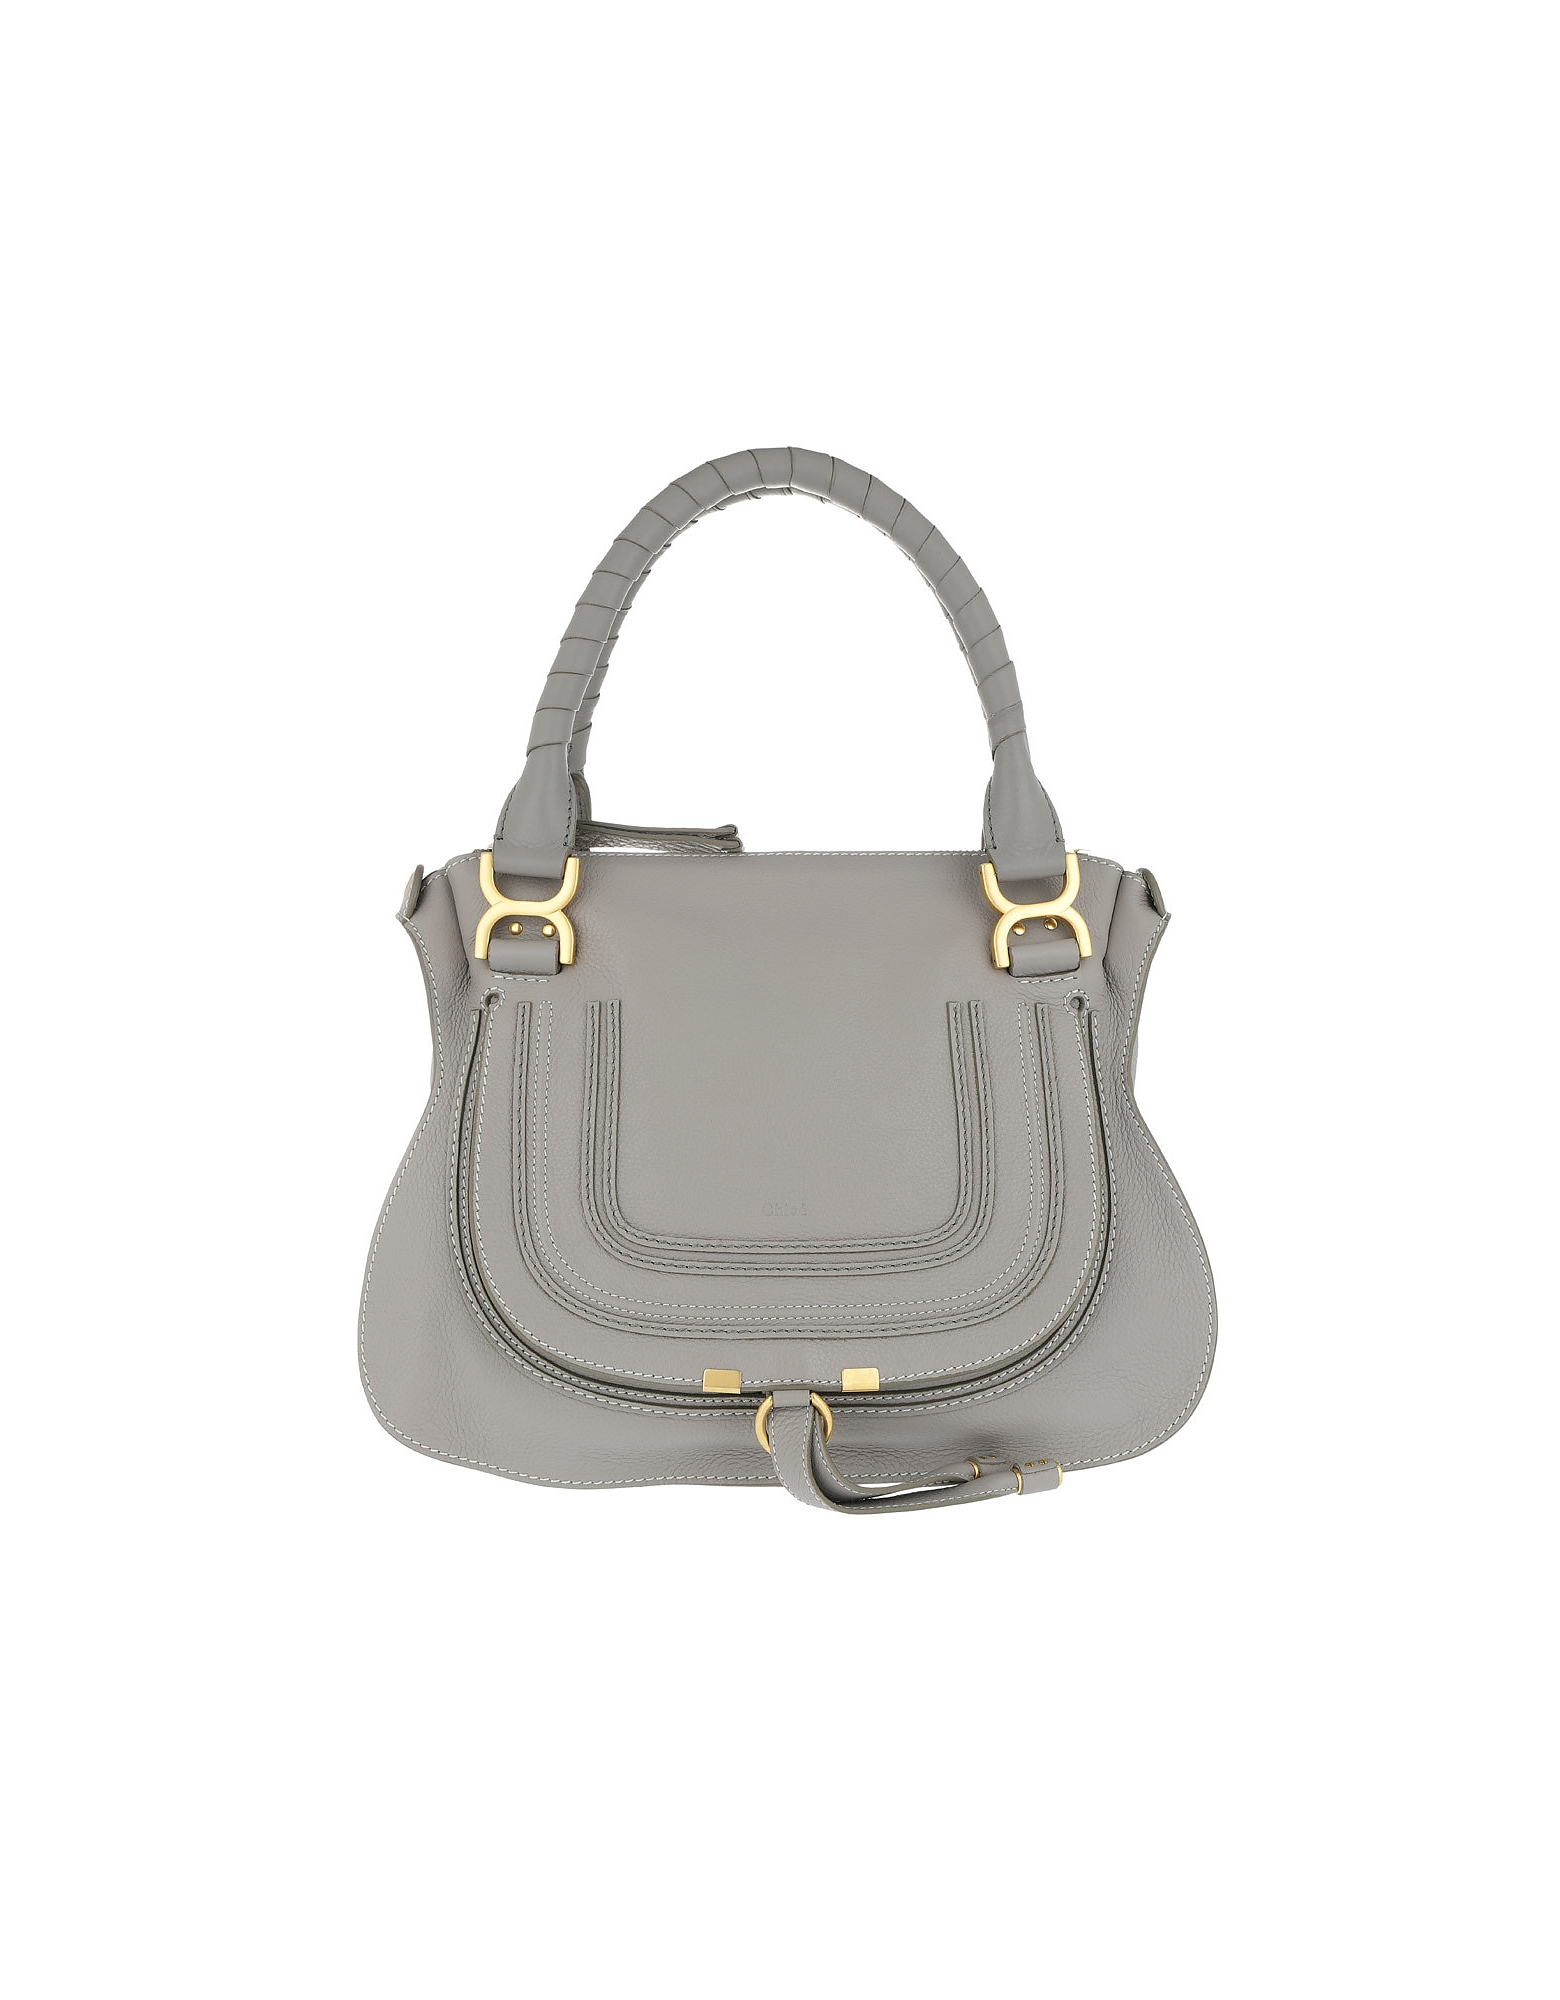 Chloe Designer Handbags, Marcie Medium Shoulder Bag Cashmere Grey (Luggage & Bags) photo